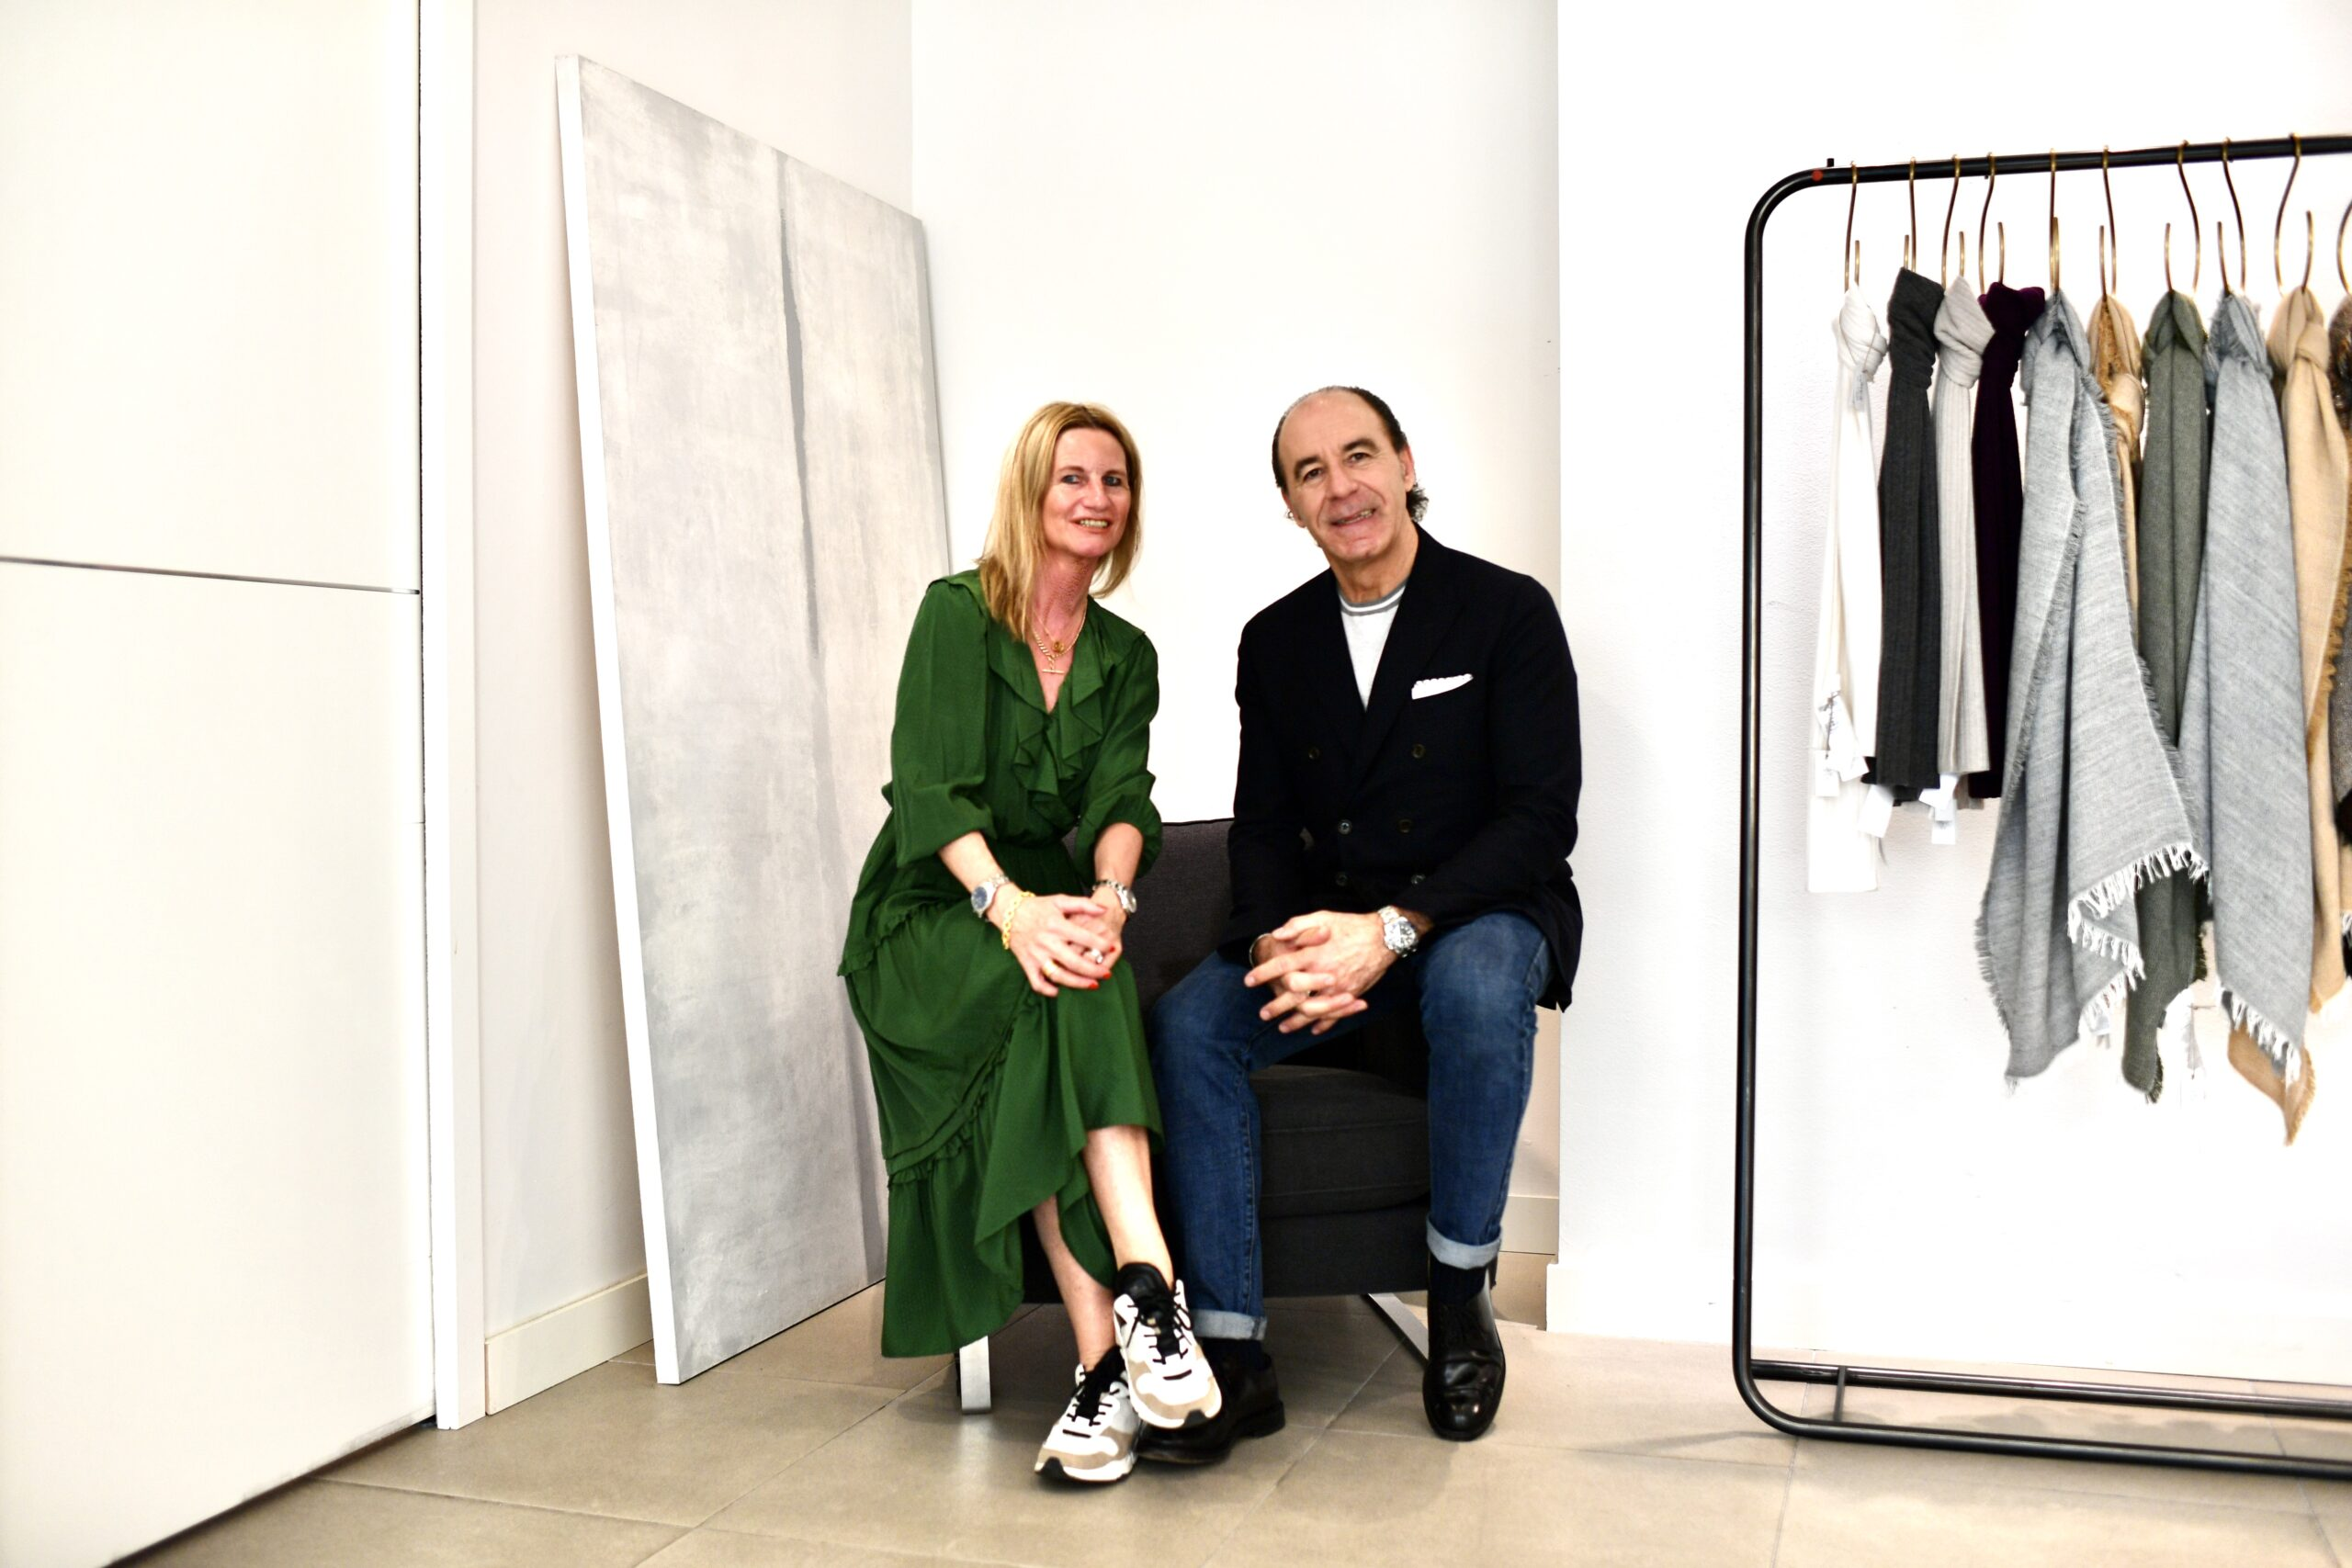 How COVID-19 really affected the fashion industry - talking to Eleventy's CEO and creative director, Paolo Zuntini in Milan.